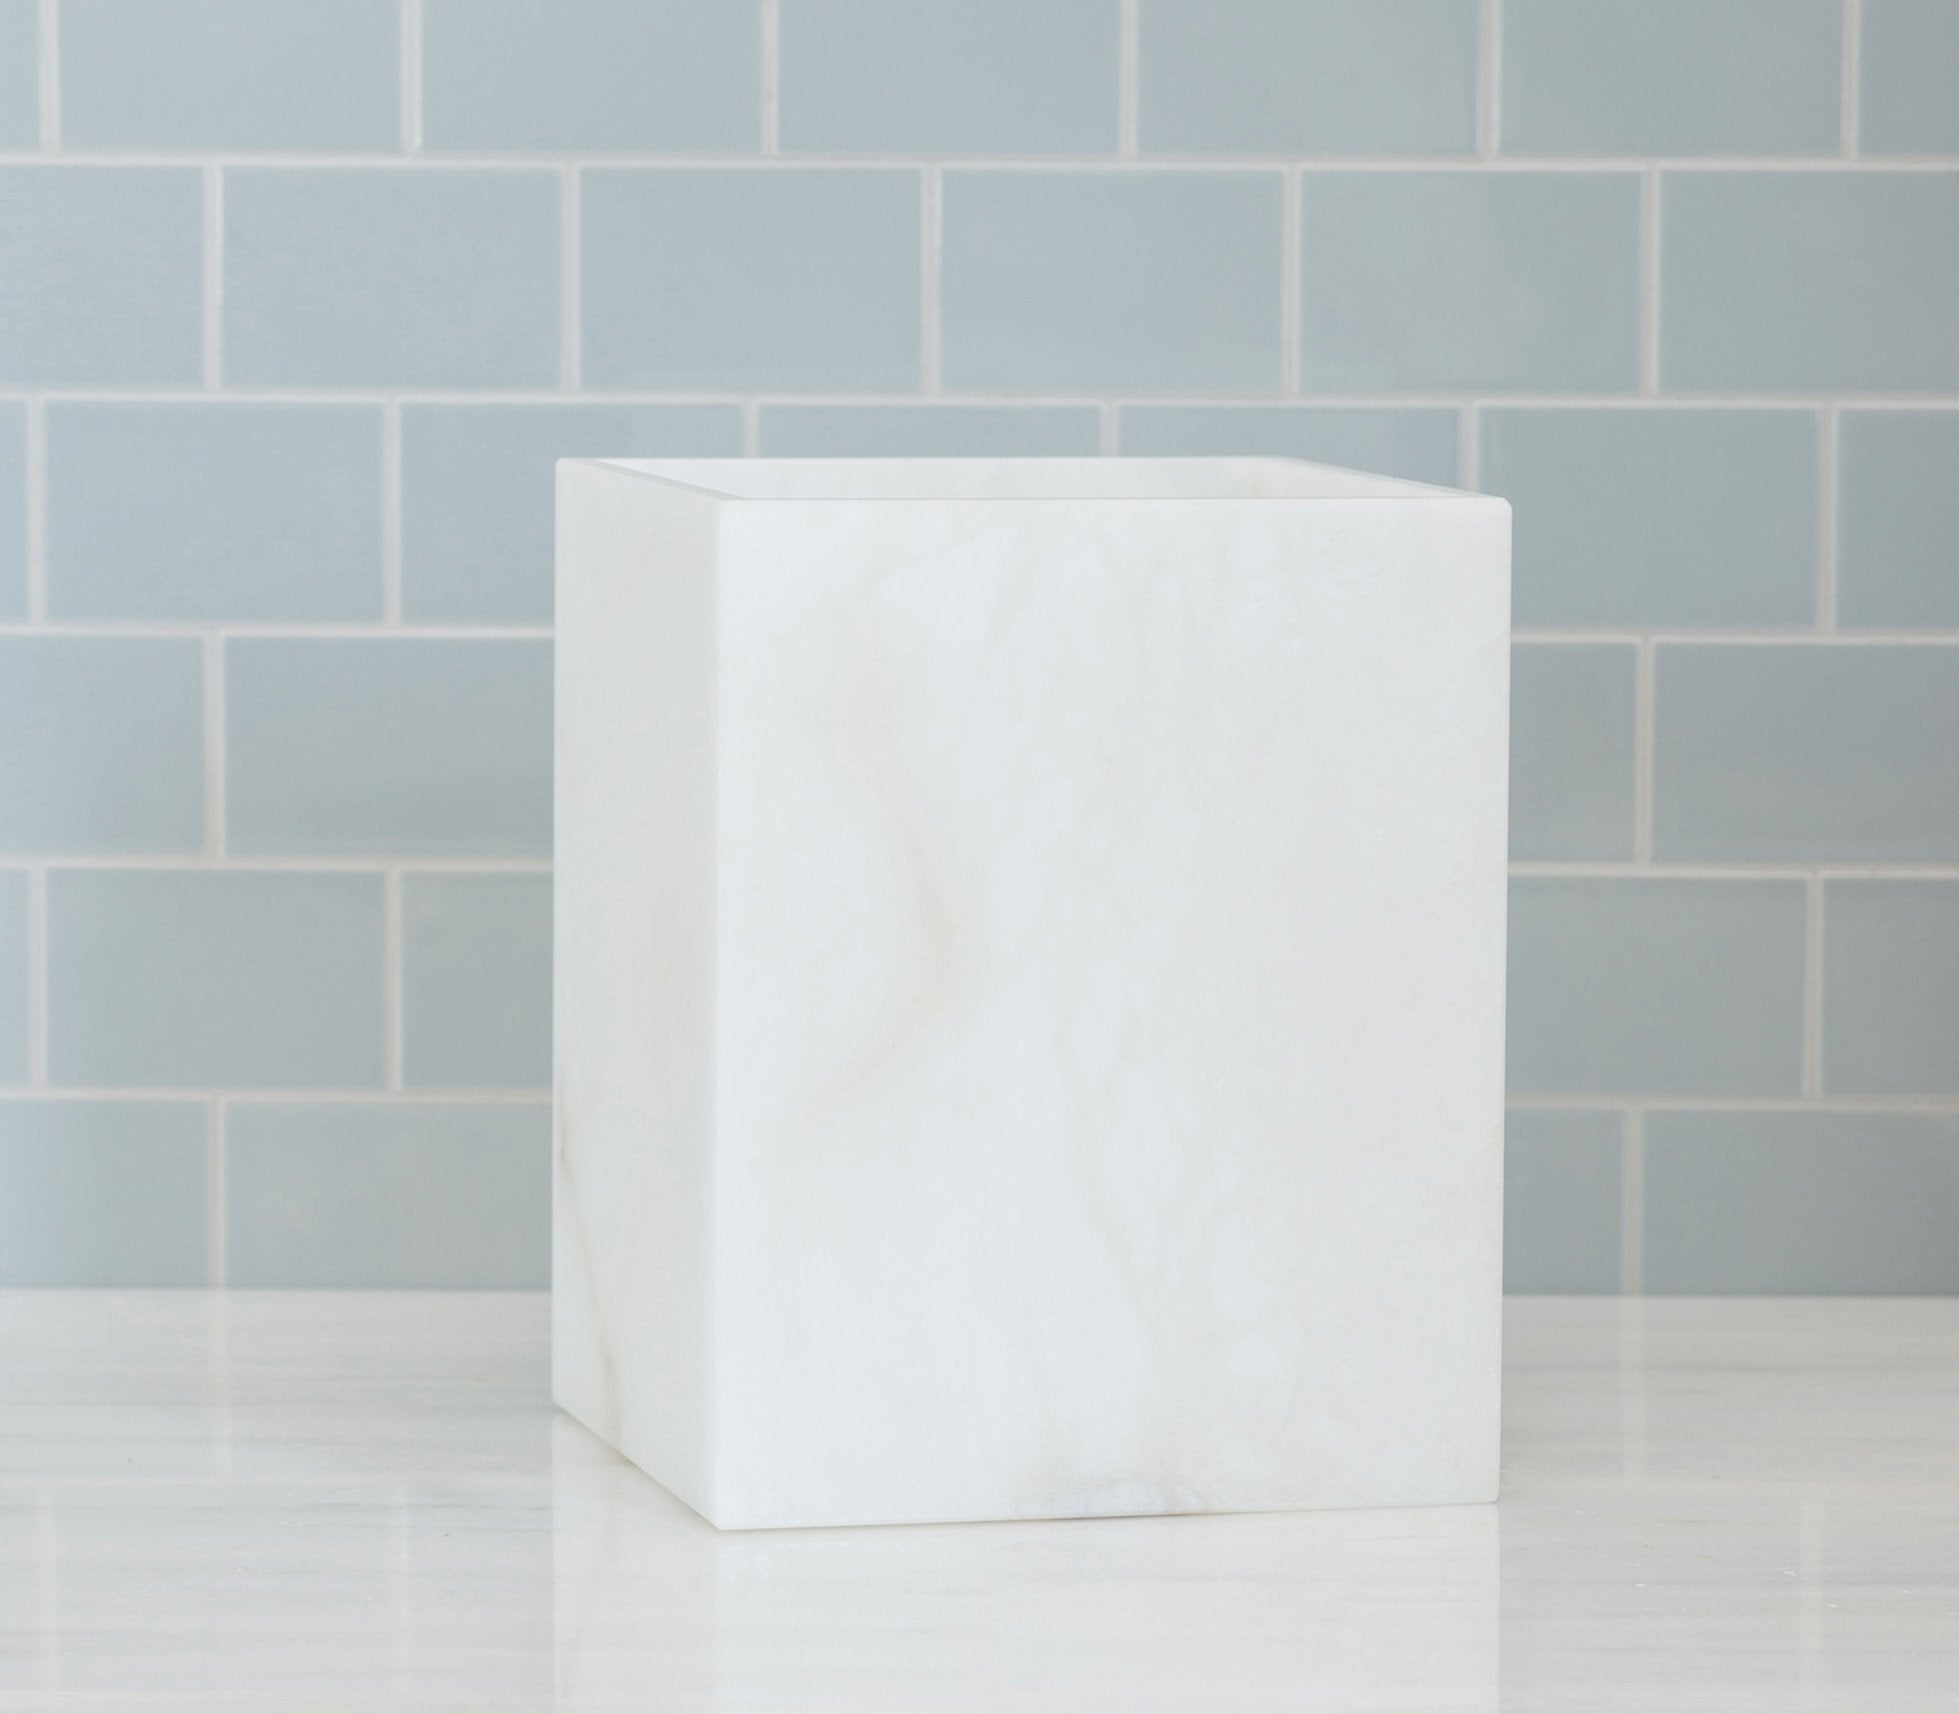 Alabaster Accessories Product Image 3